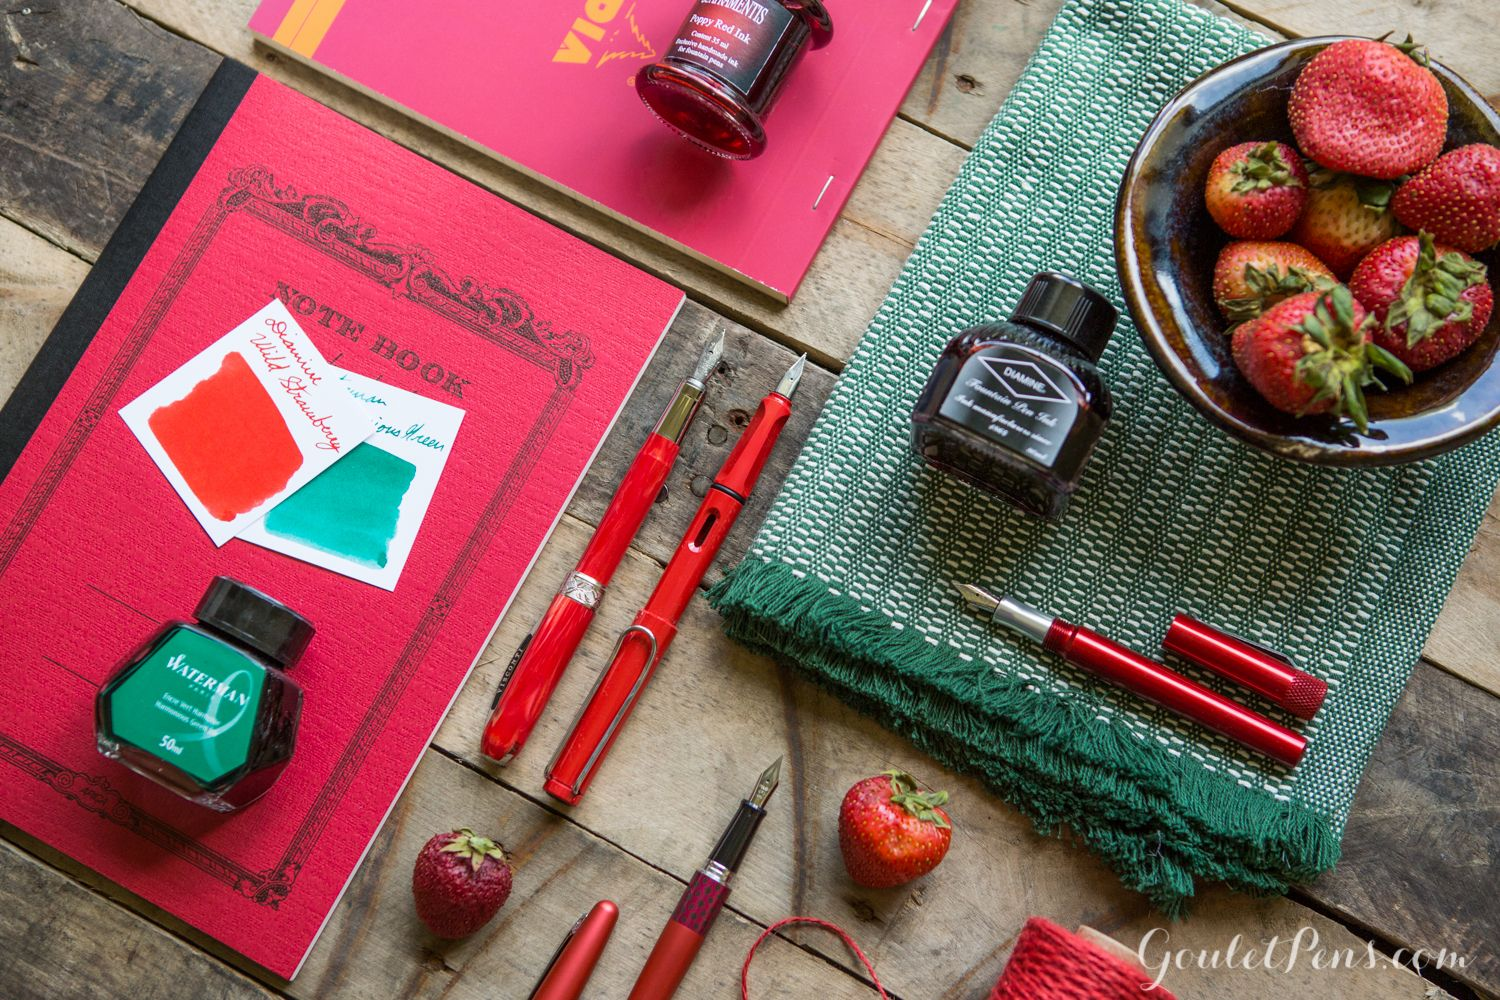 Look at this tasty arrangement of strawberry themed fountain pens, notebooks, and ink!